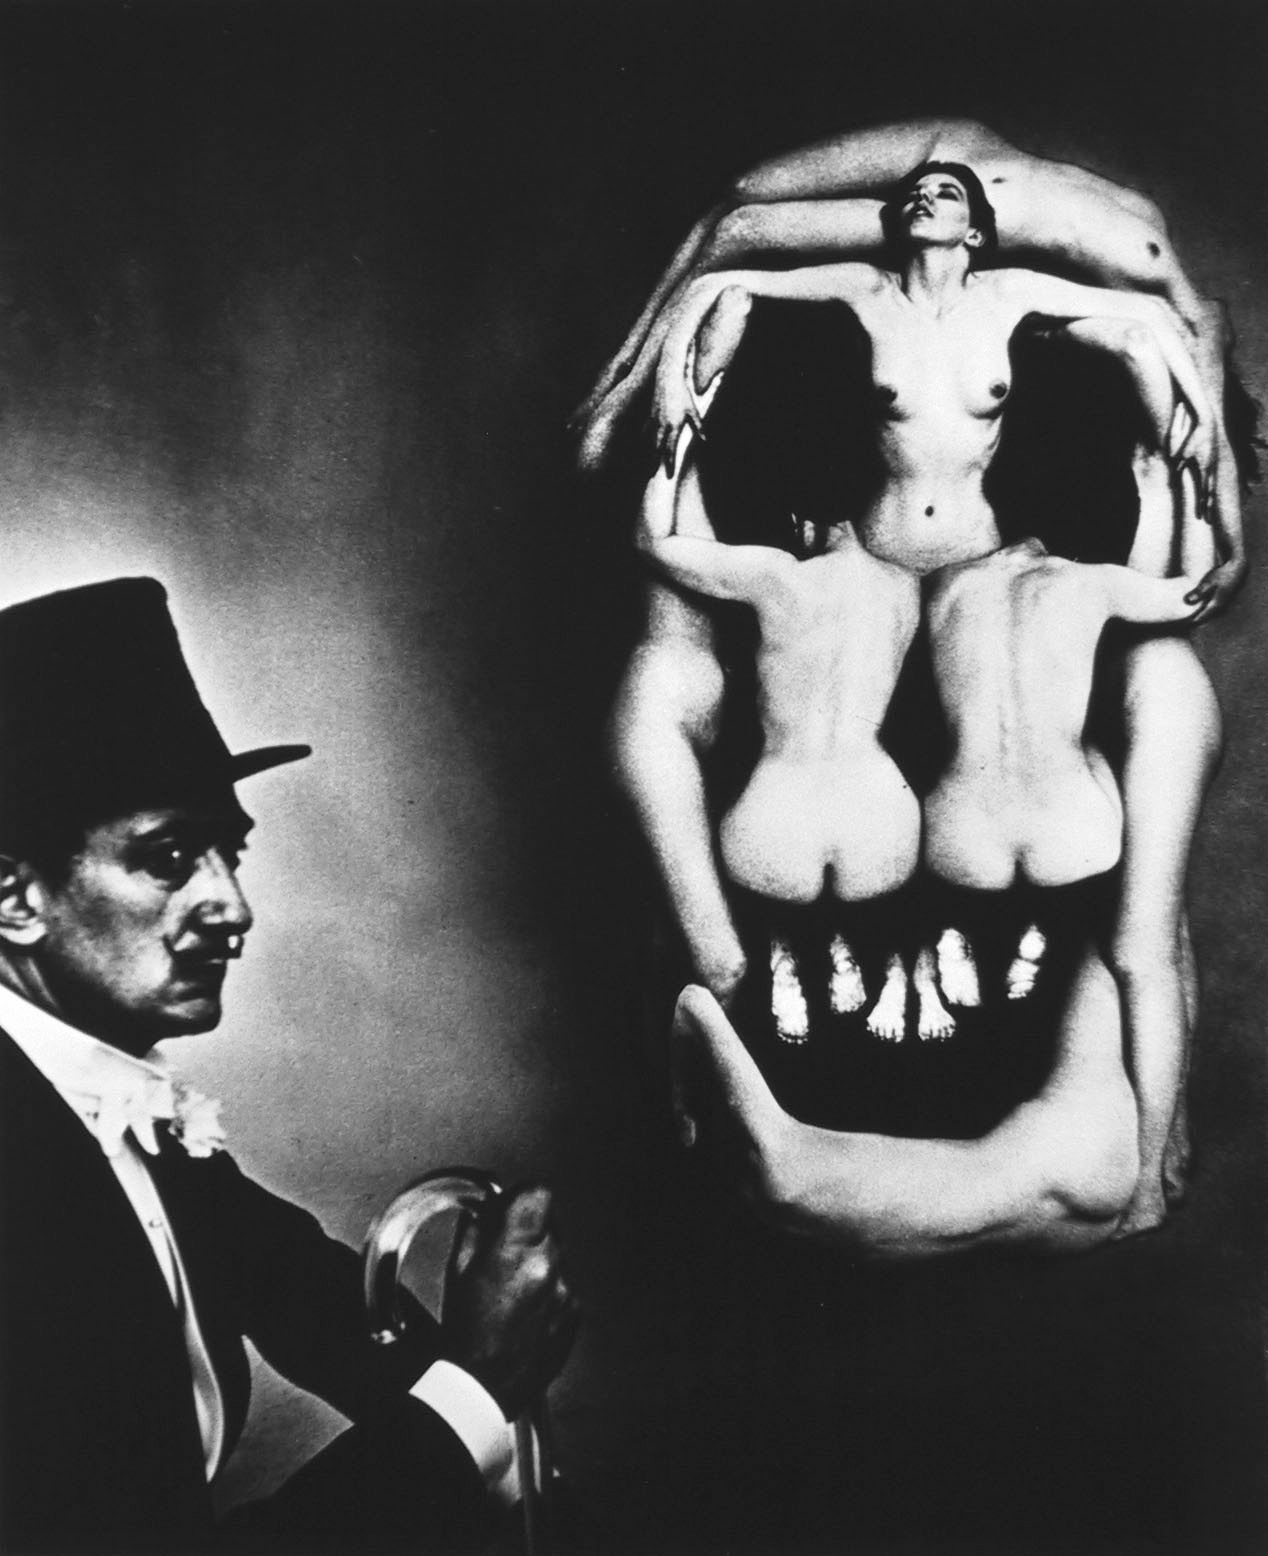 Halsman of Salvador Dali